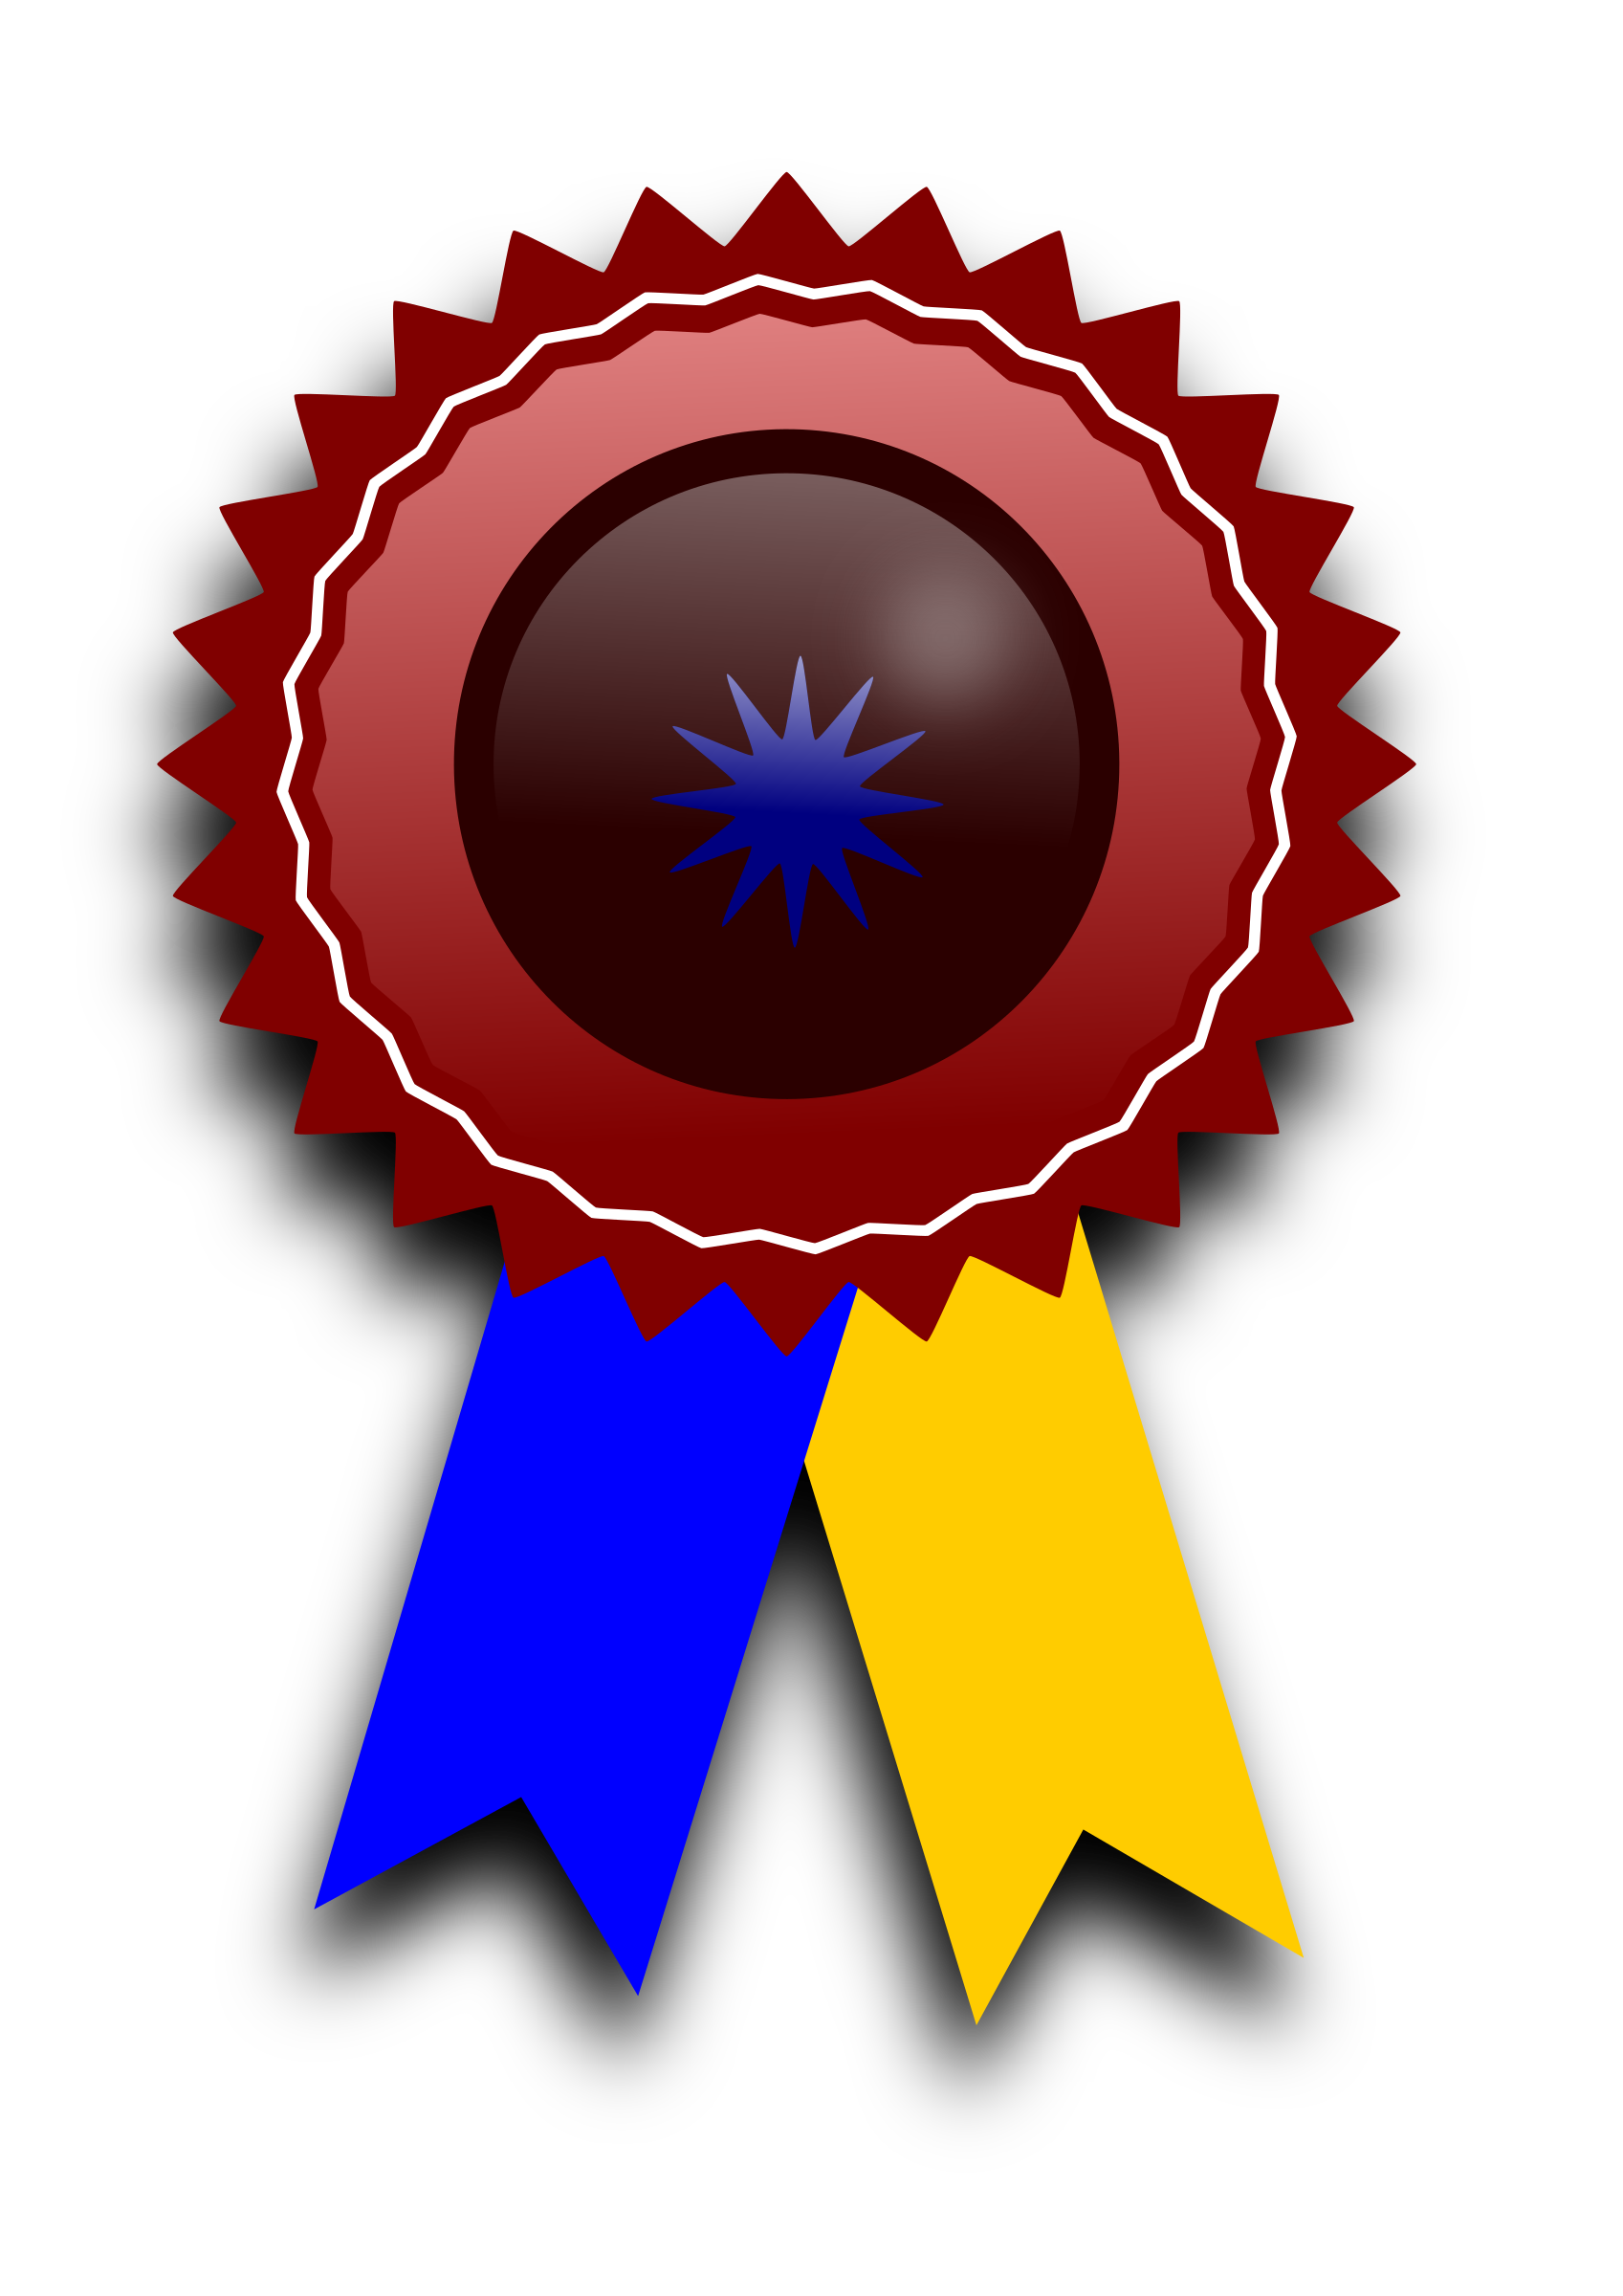 award ribbon by hatalar205